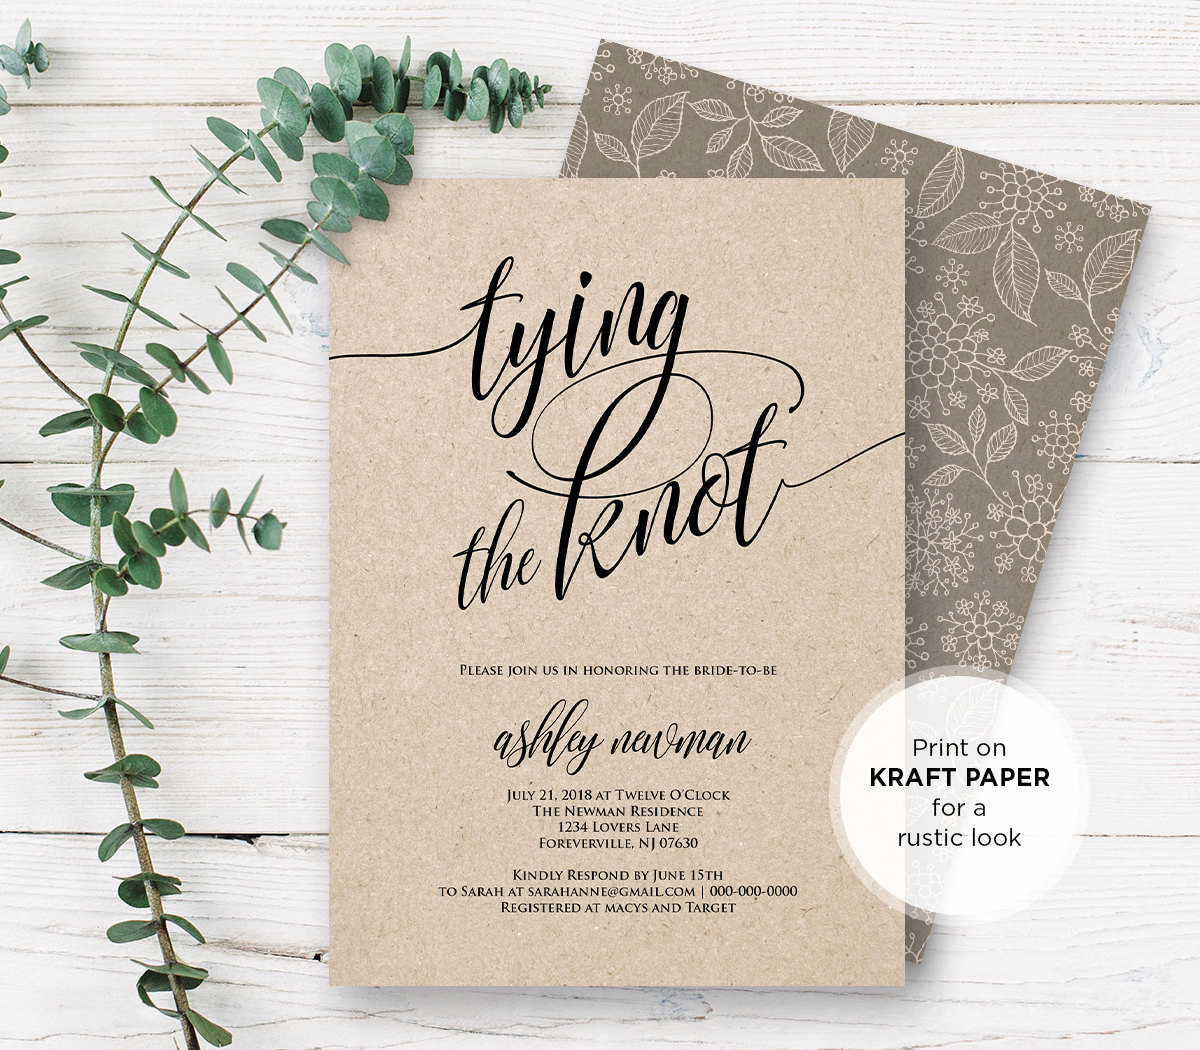 Tying the Knot Wedding Invitation Best Of Rustic Bridal Shower Invitation Printable Tying the Knot